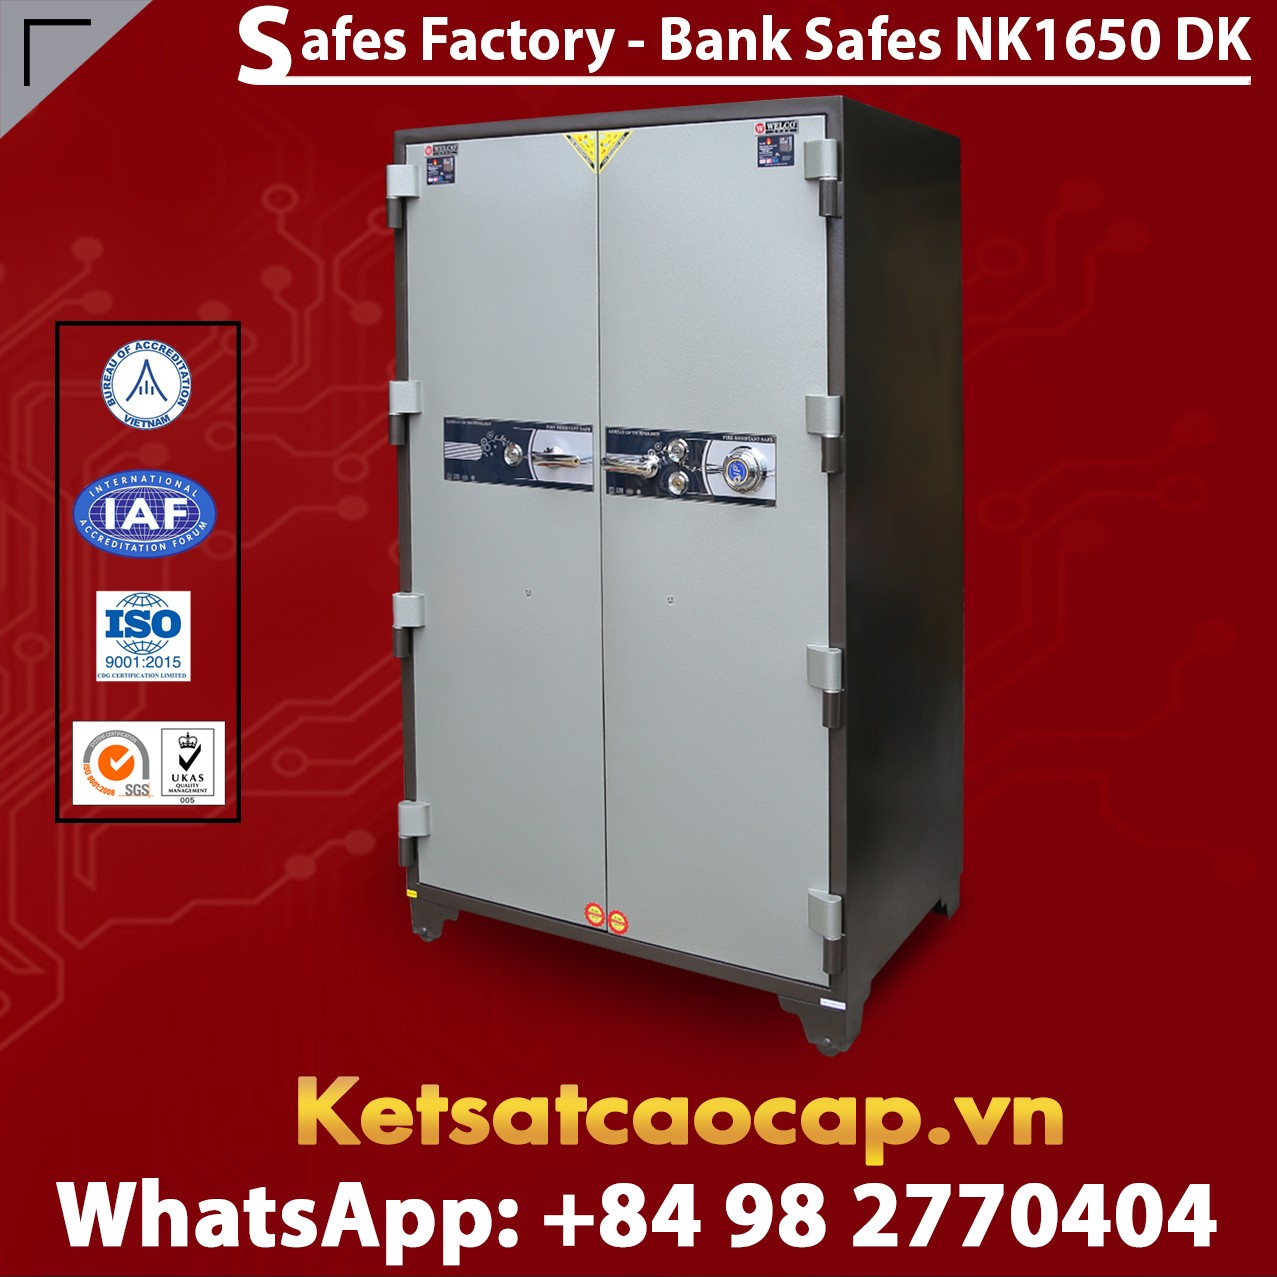 Bank Safes Box made in Viet Nam